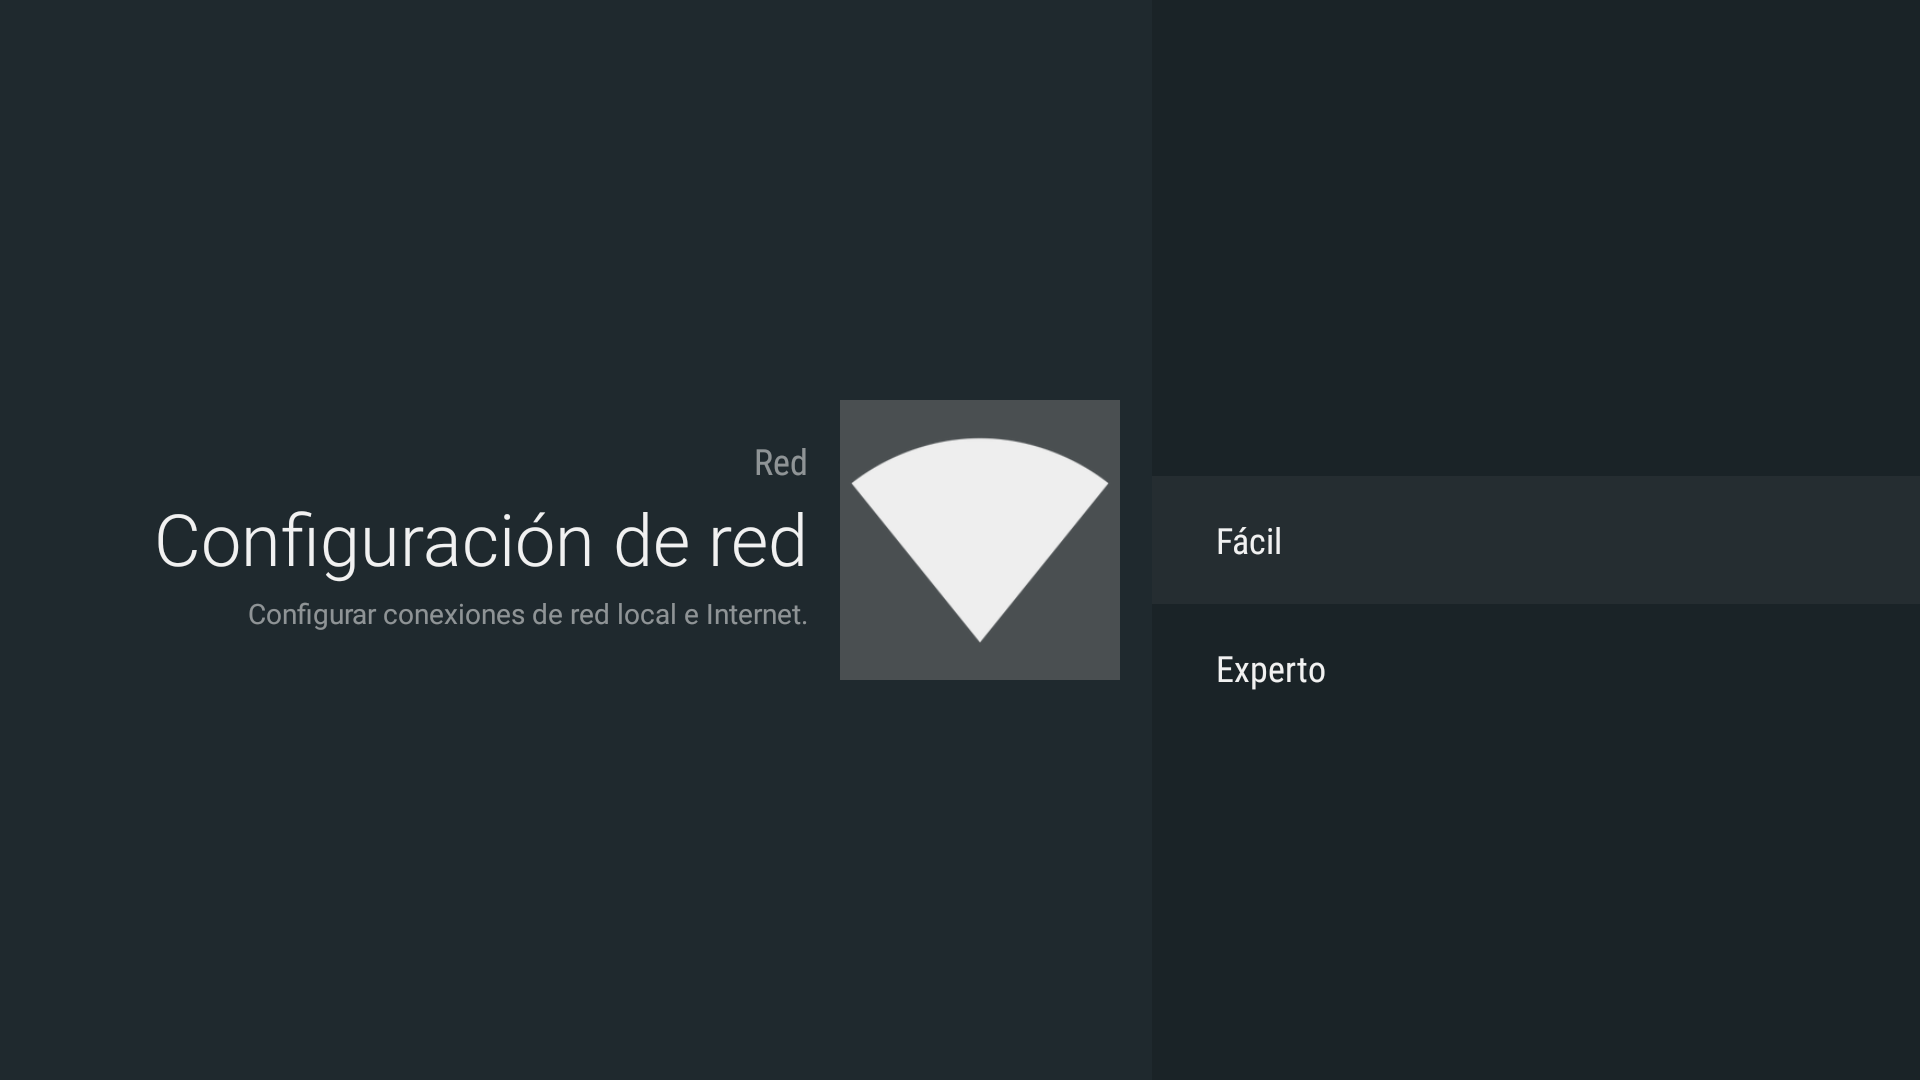 Android - Configuración de red